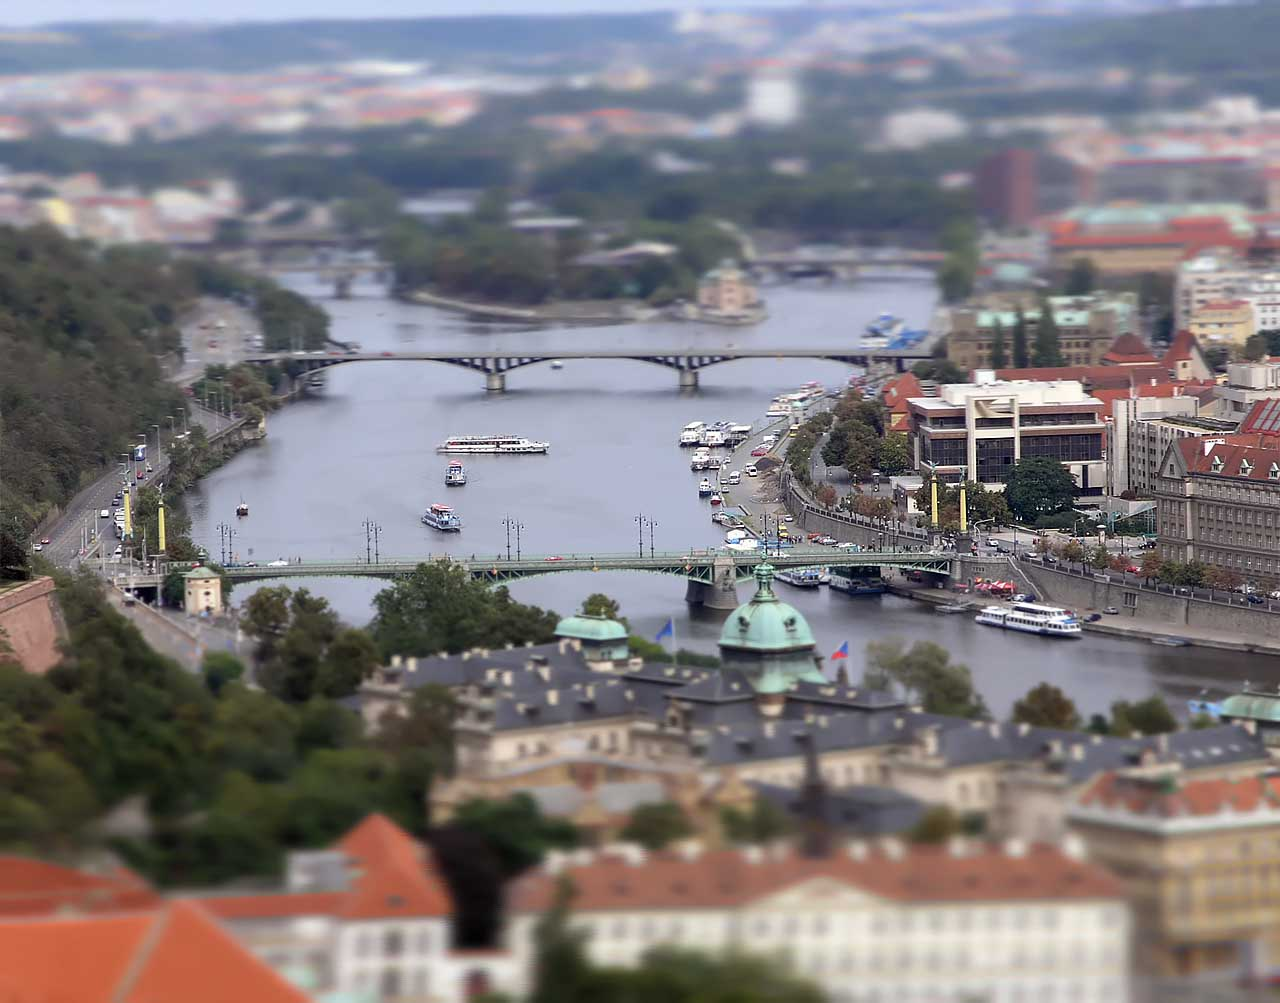 Prague as a miniature replica